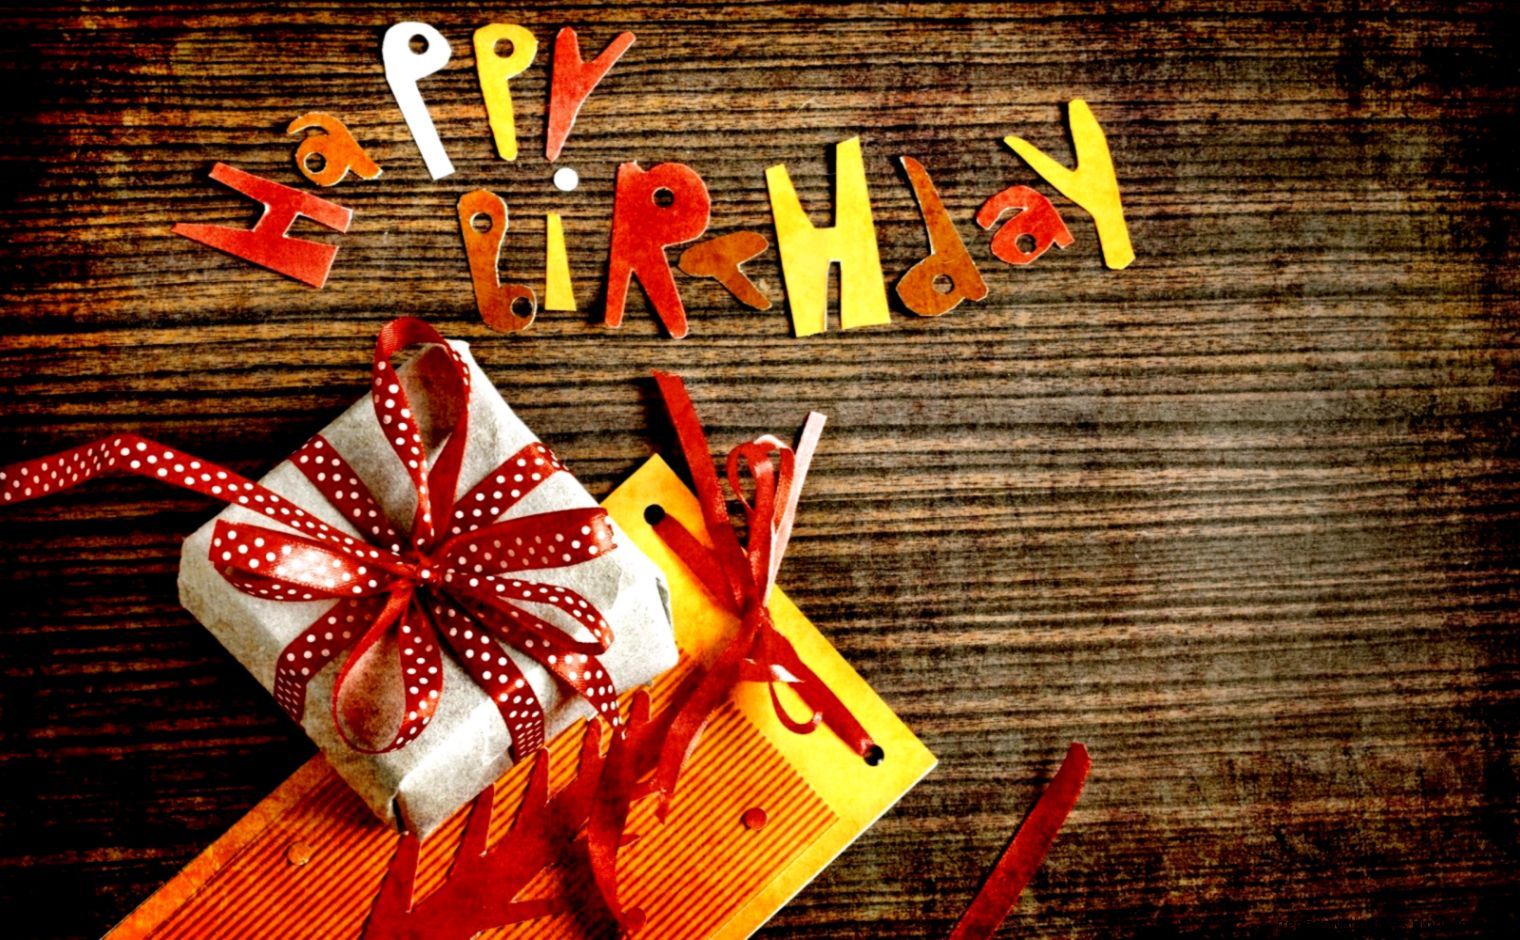 Hd Wallpaper Happy Birthday Gifts Free Hd Wallpapers